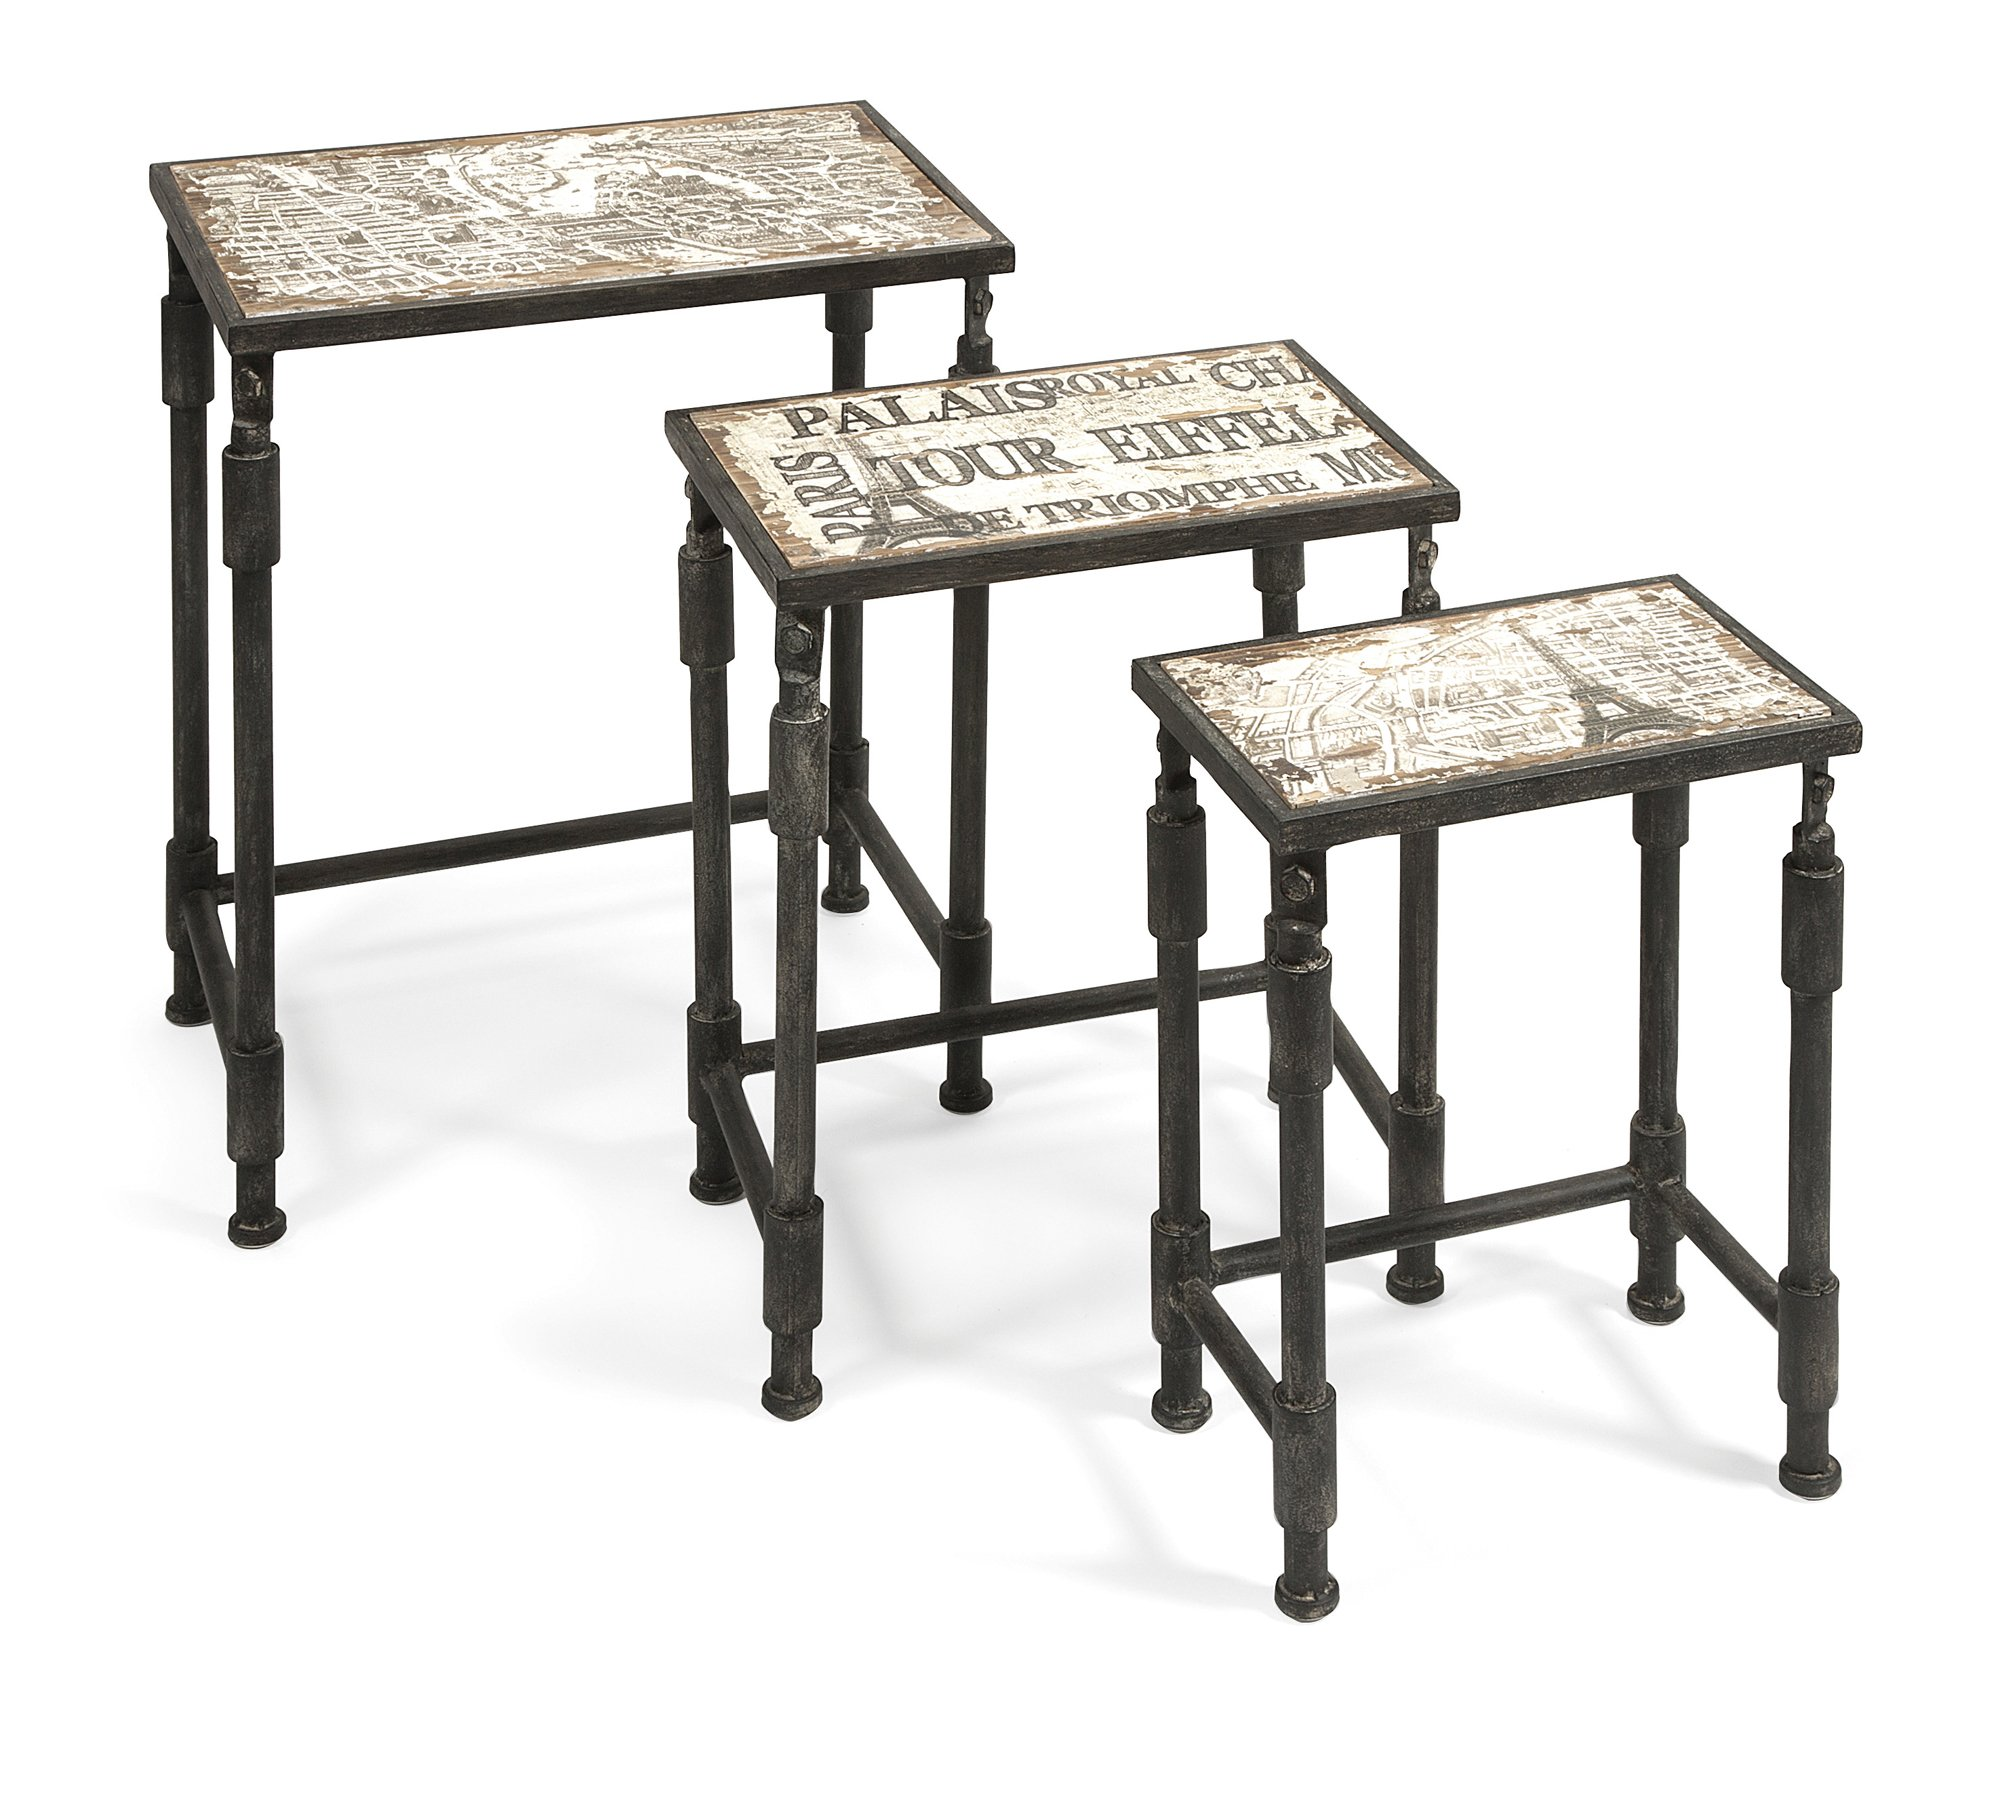 IMAX 97249-3 Knoxlin Nesting Tables, Set of 3